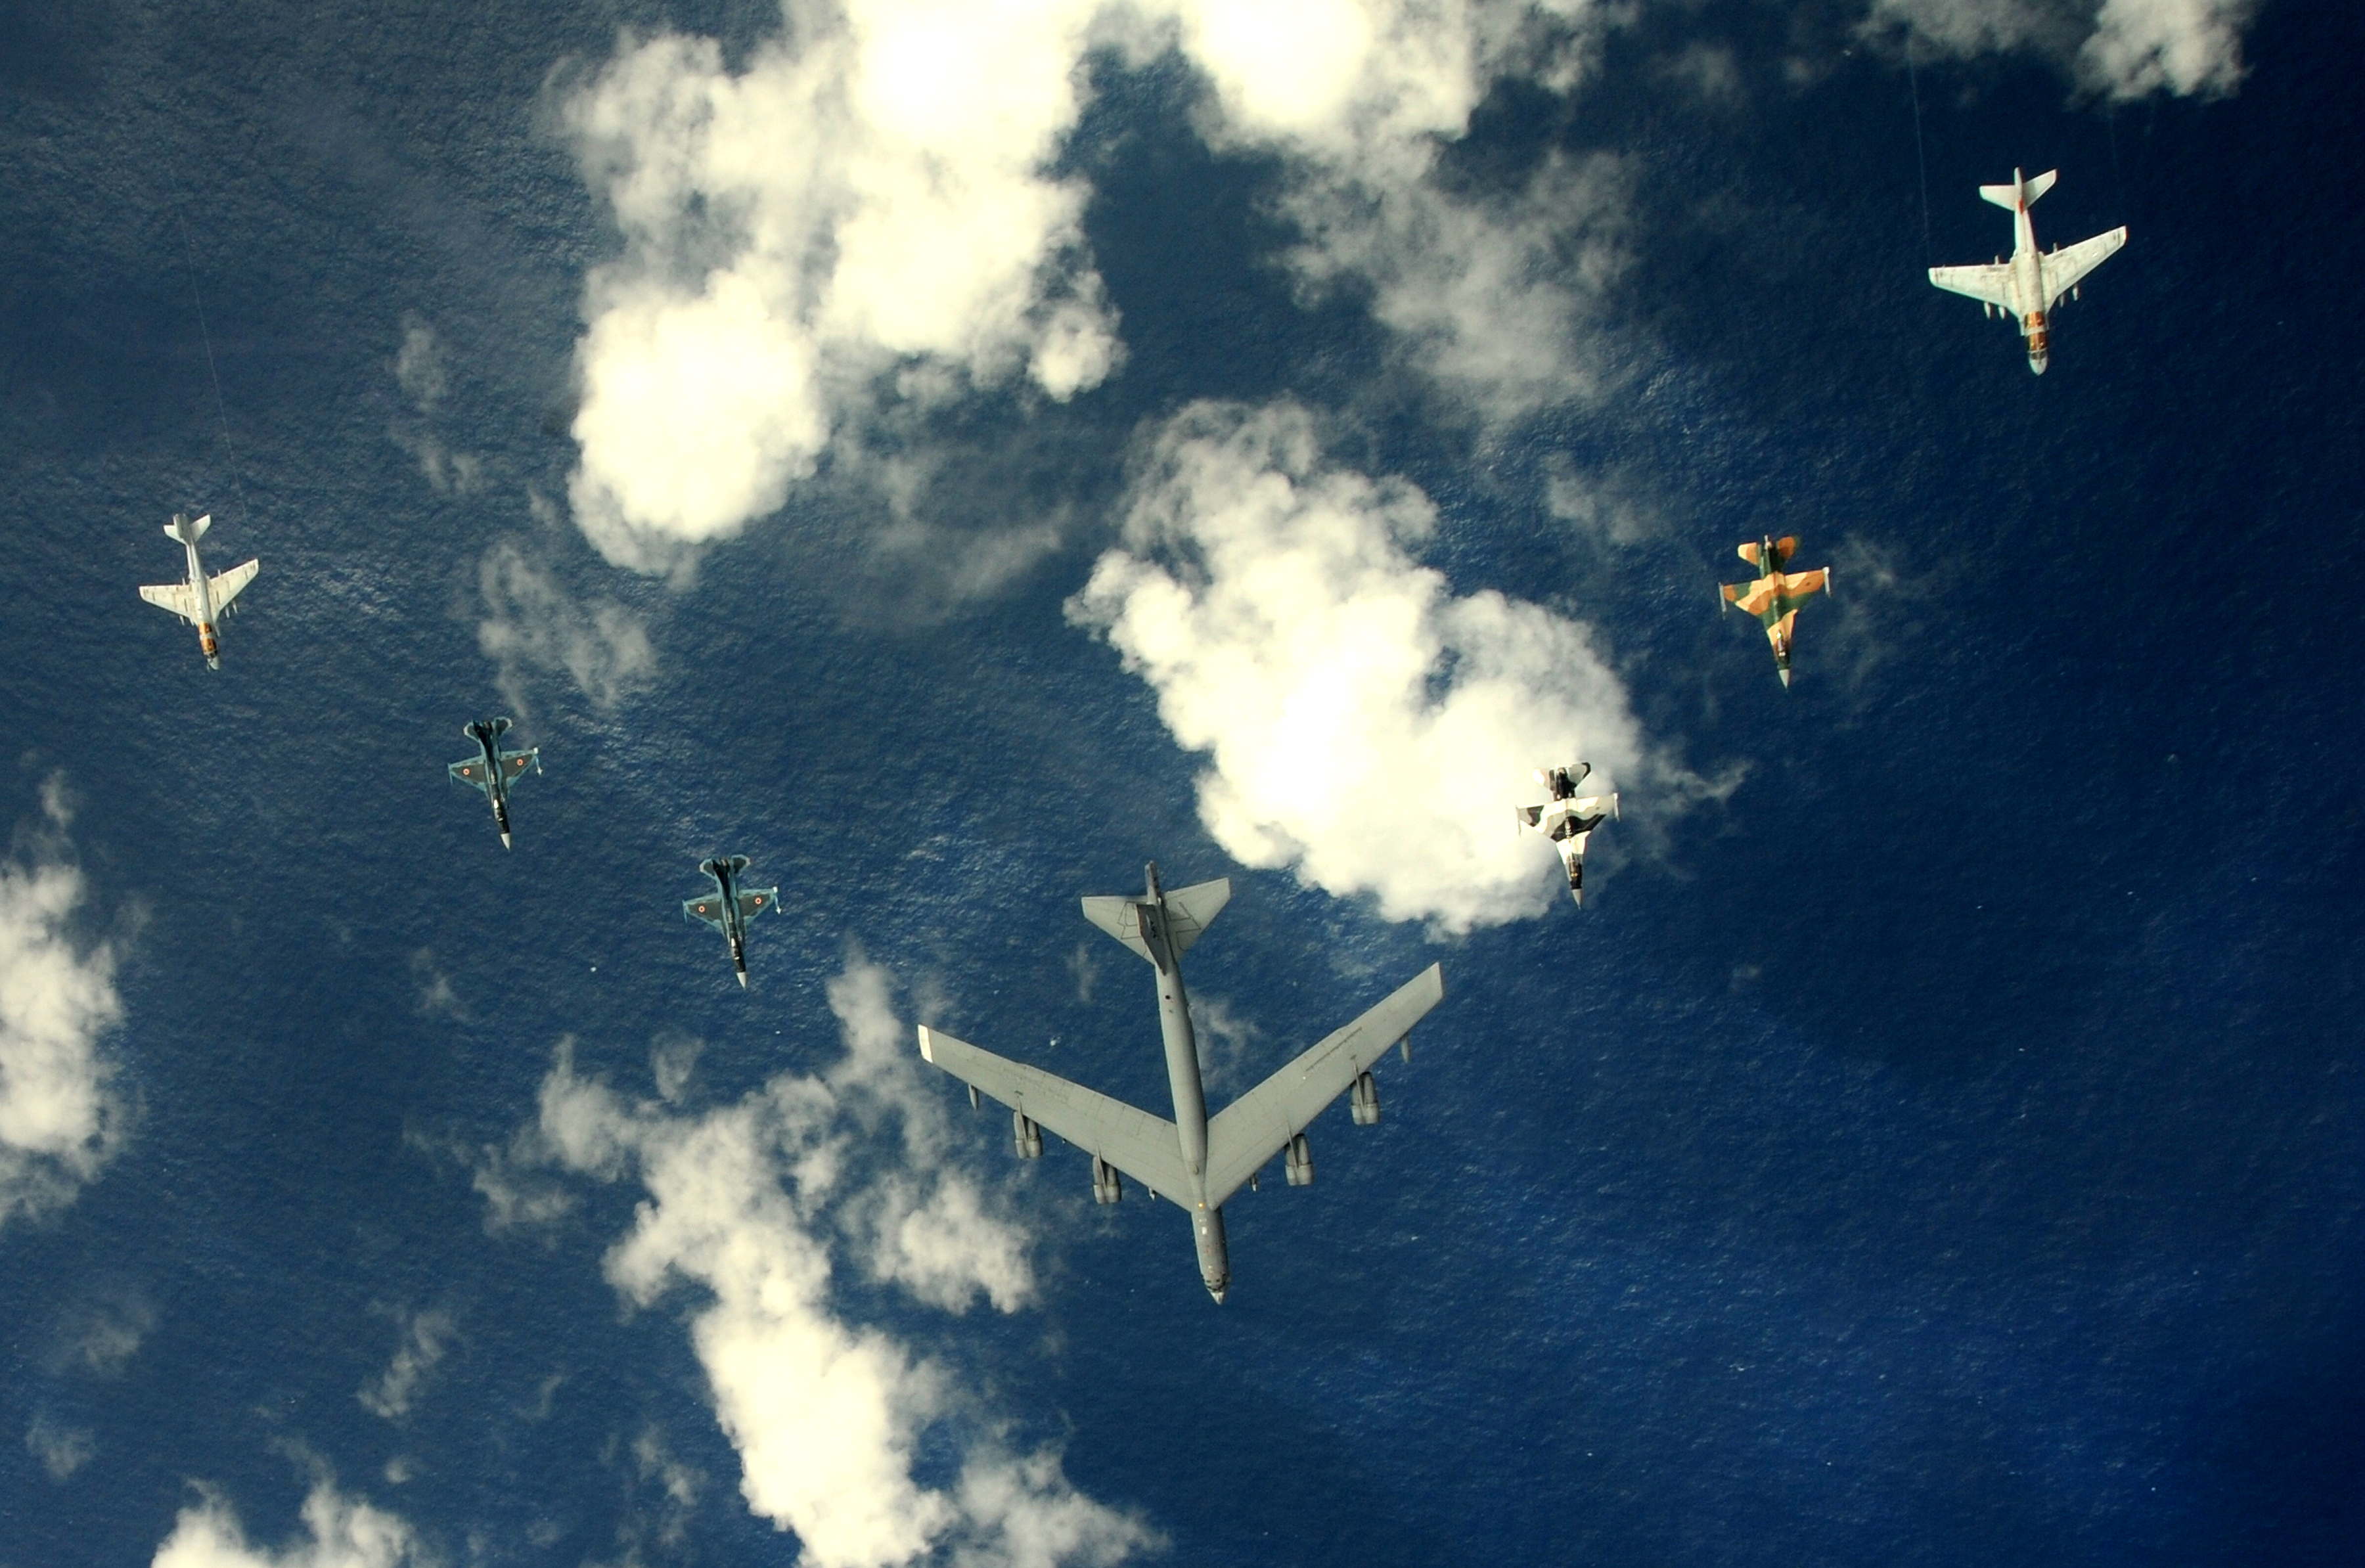 B-52 Stratofortress HD Wallpaper